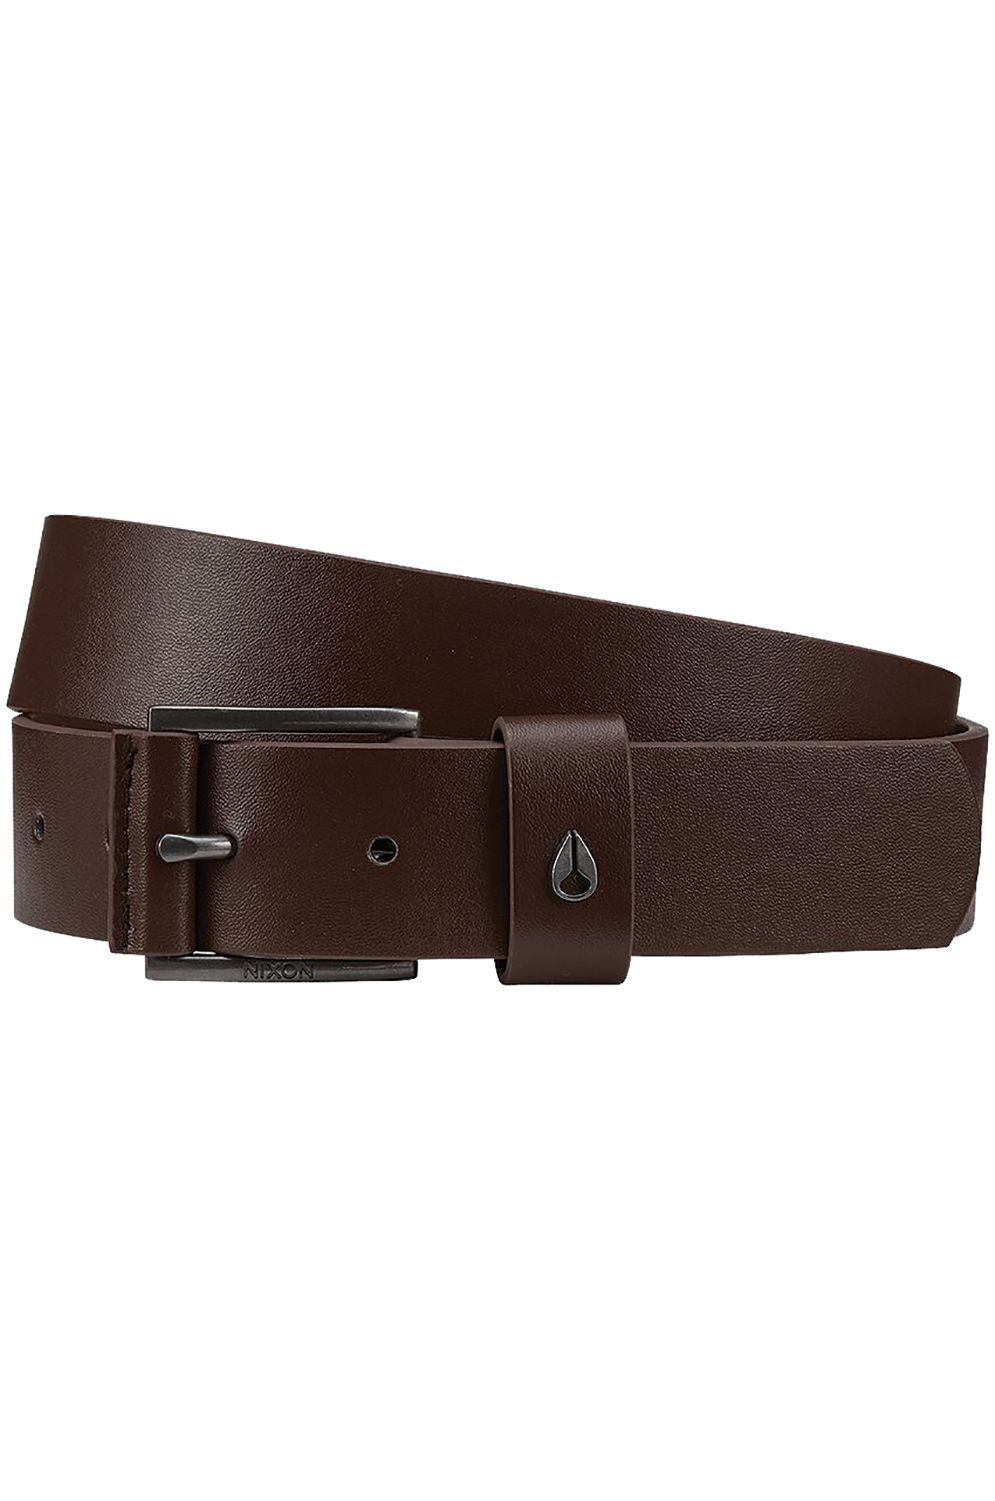 Nixon Belt AMERICANA VEGAN Brown